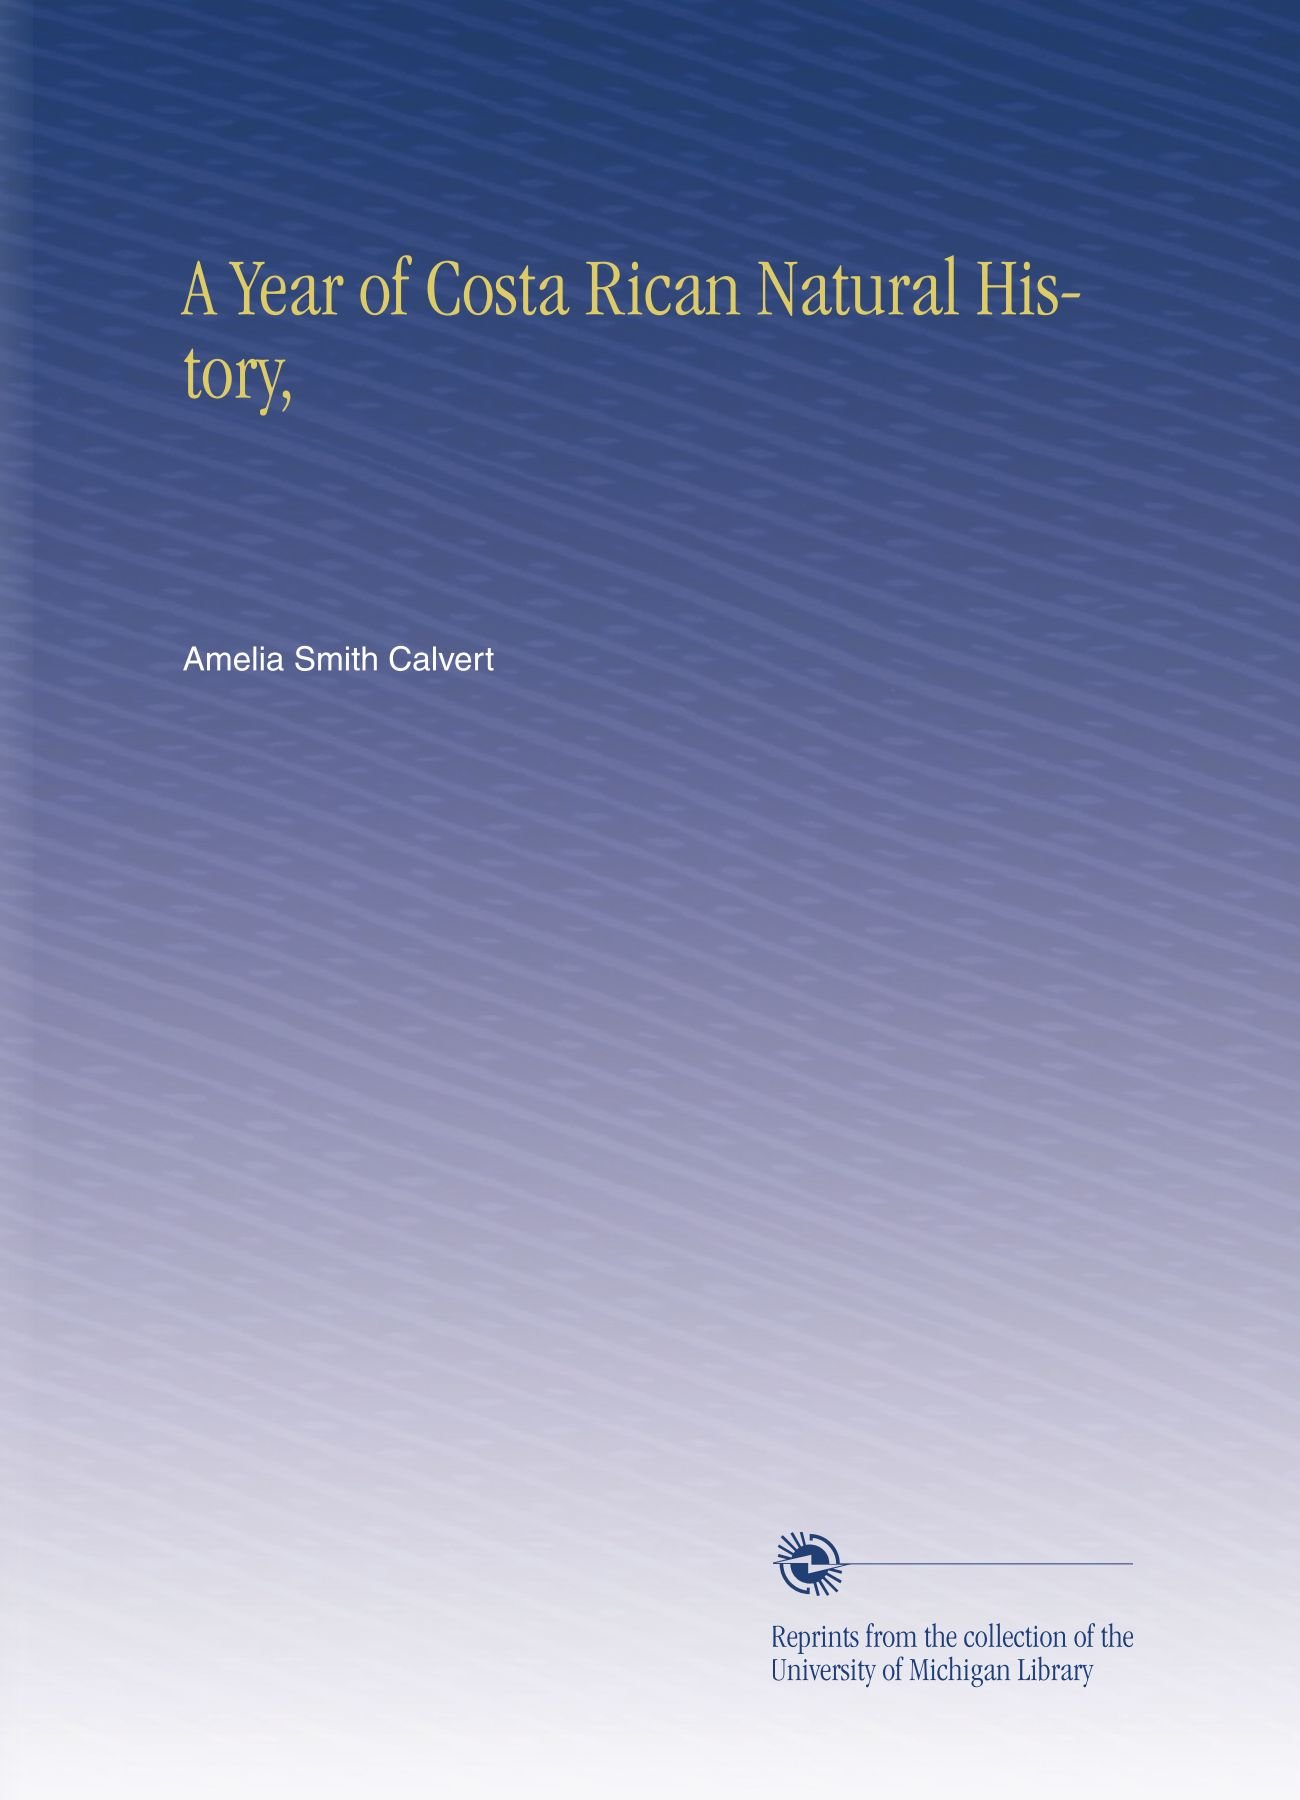 Download A Year of Costa Rican Natural History, pdf